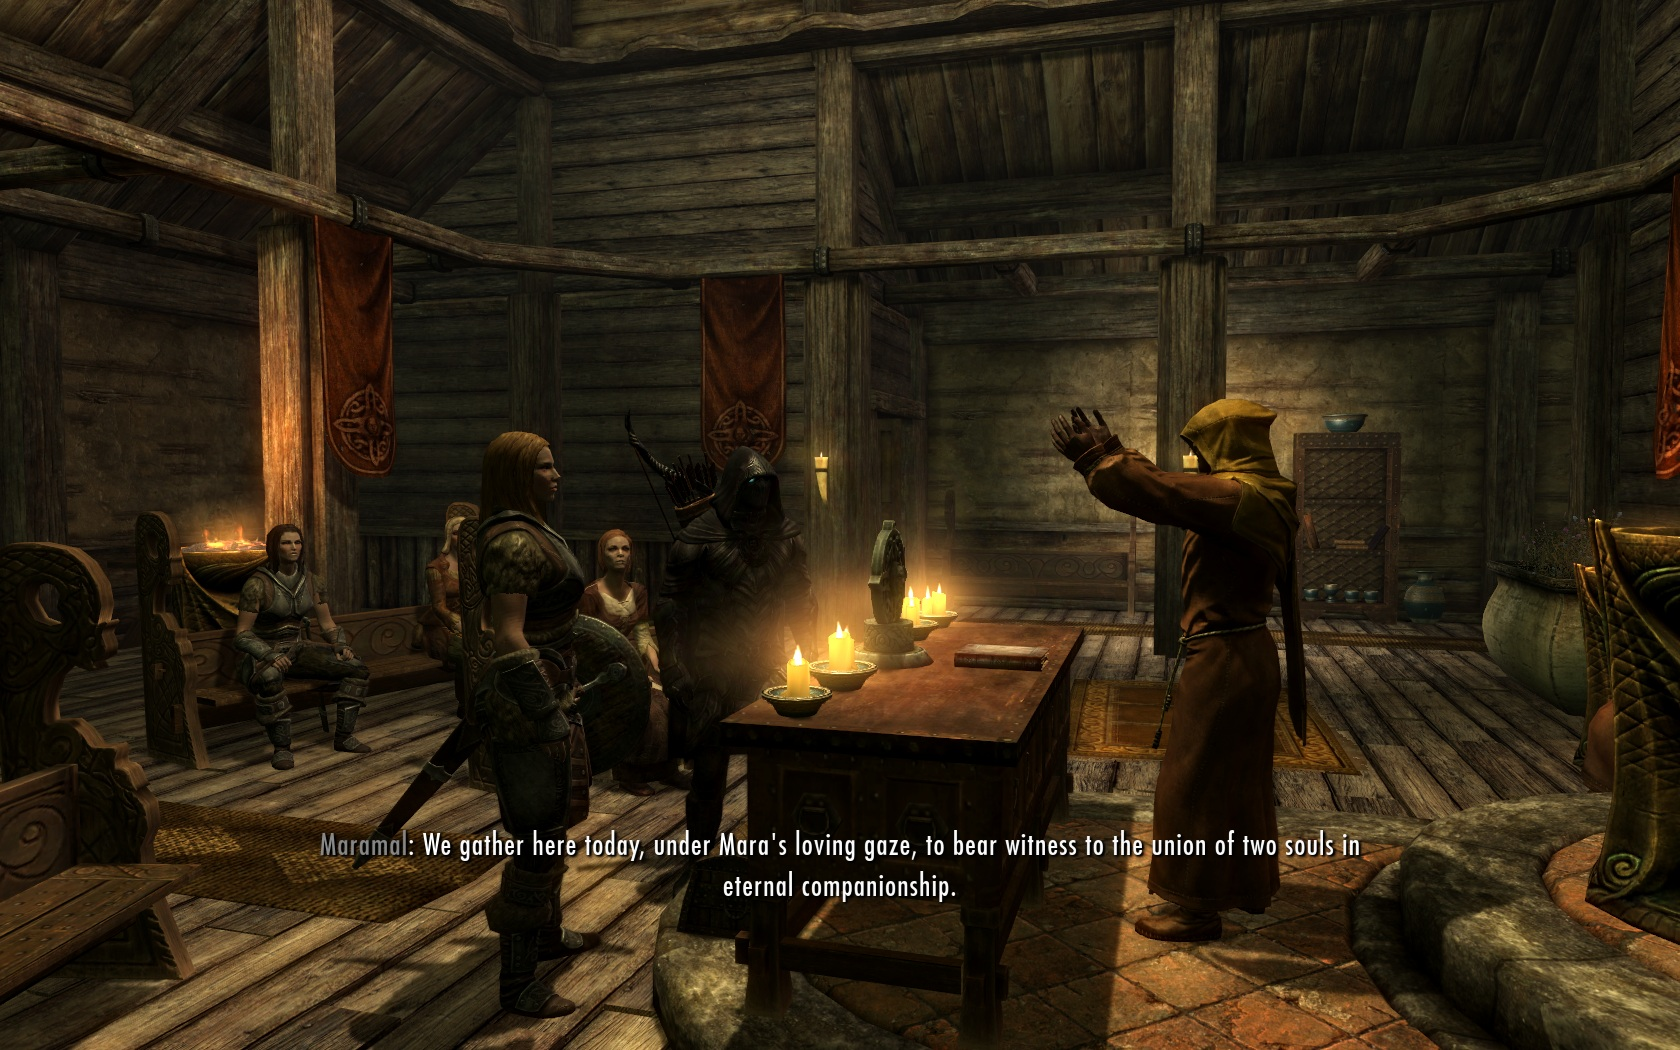 Marriage (Skyrim)